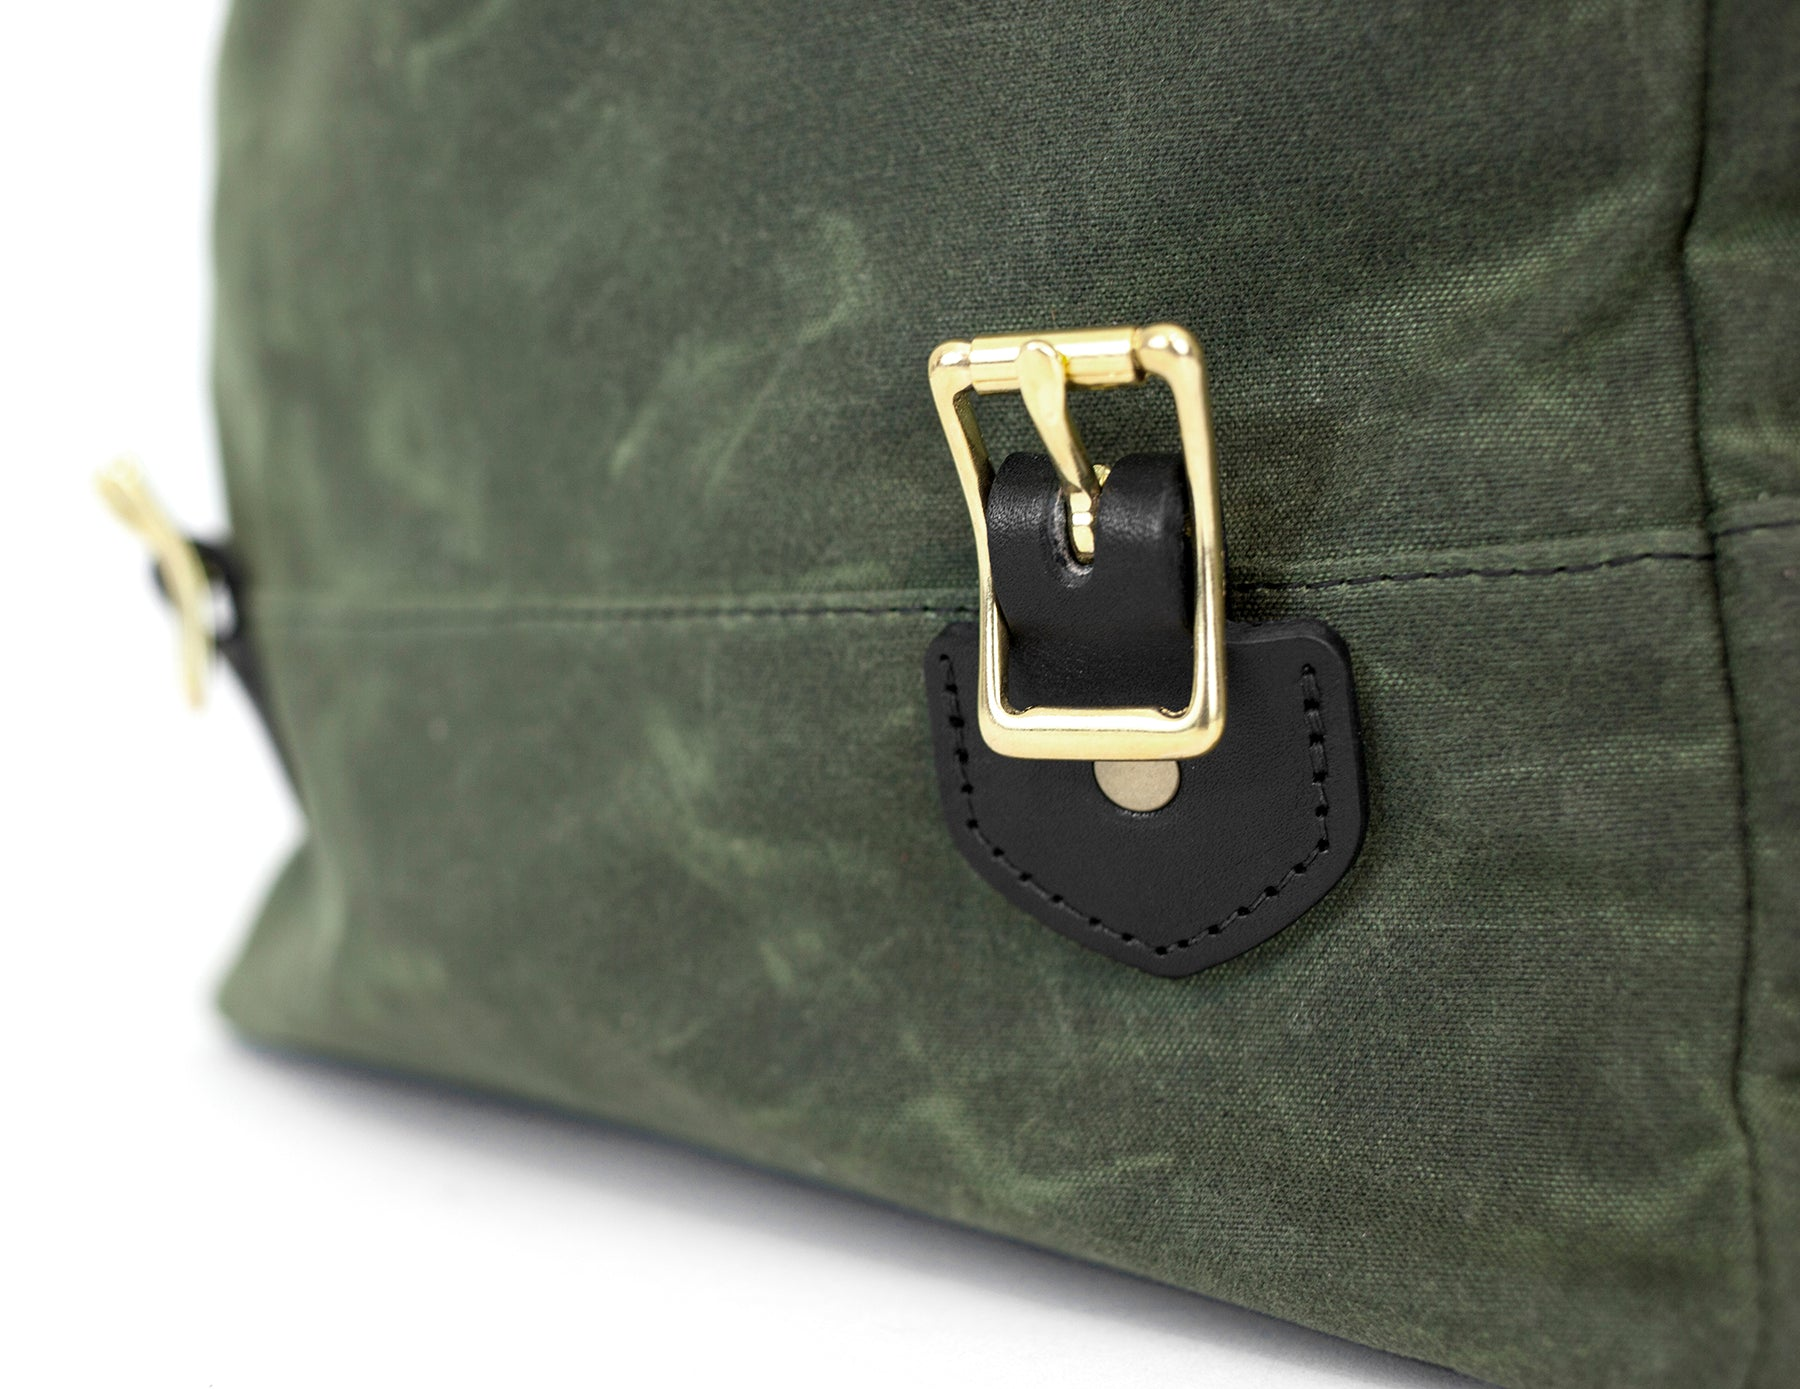 86bbb7732 Waxed Canvas Backpack, made in usa, backpack, rucksack, bag, waxed bag.  Waxed Canvas Backpack, made in usa, backpack, rucksack, bag, waxed bag